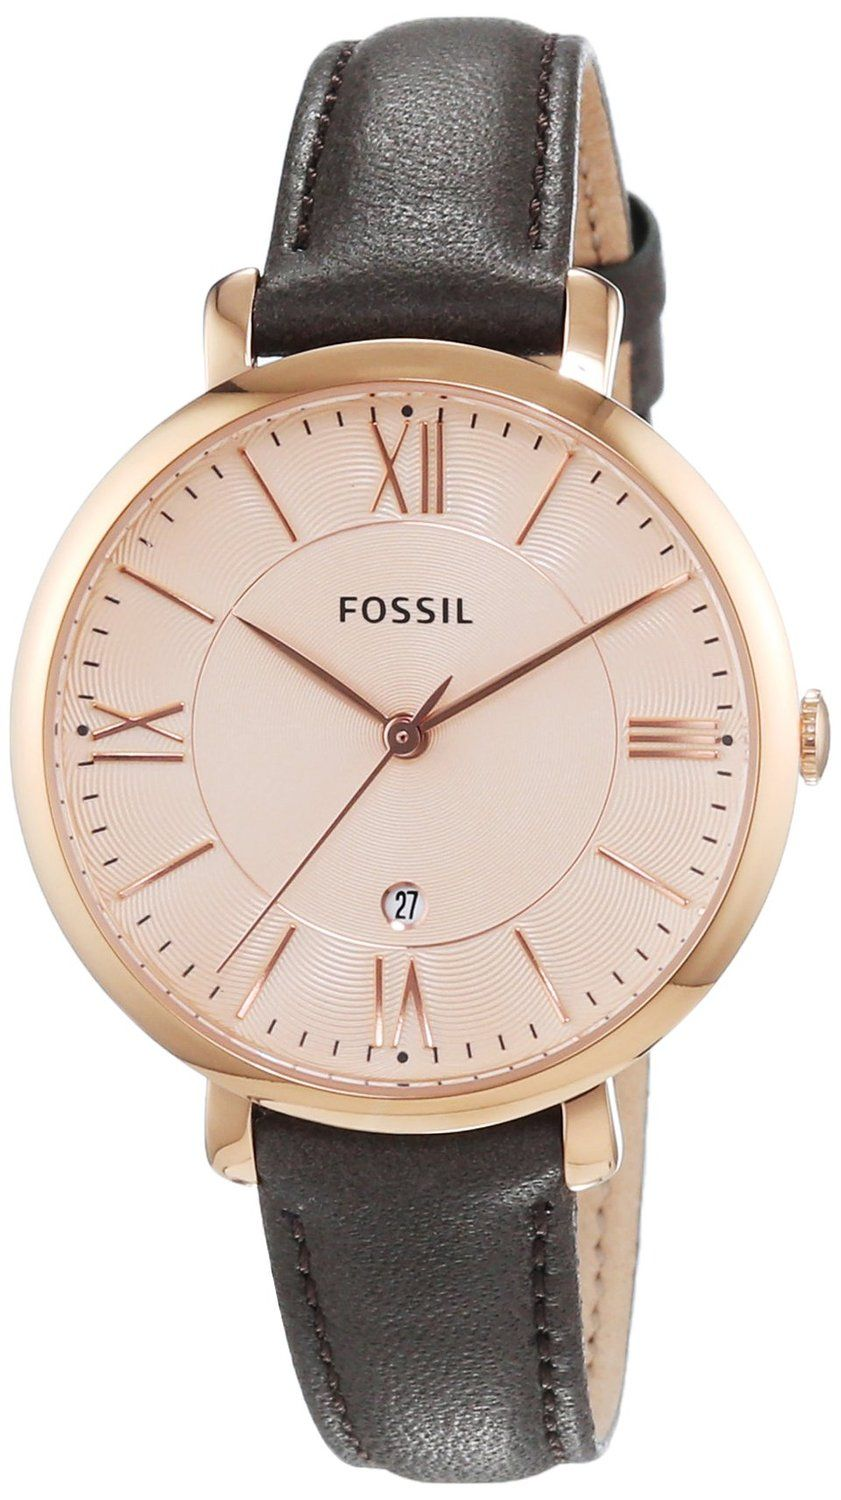 fossil es3707 montre femme quartz analogique bracelet cuir marron montres. Black Bedroom Furniture Sets. Home Design Ideas